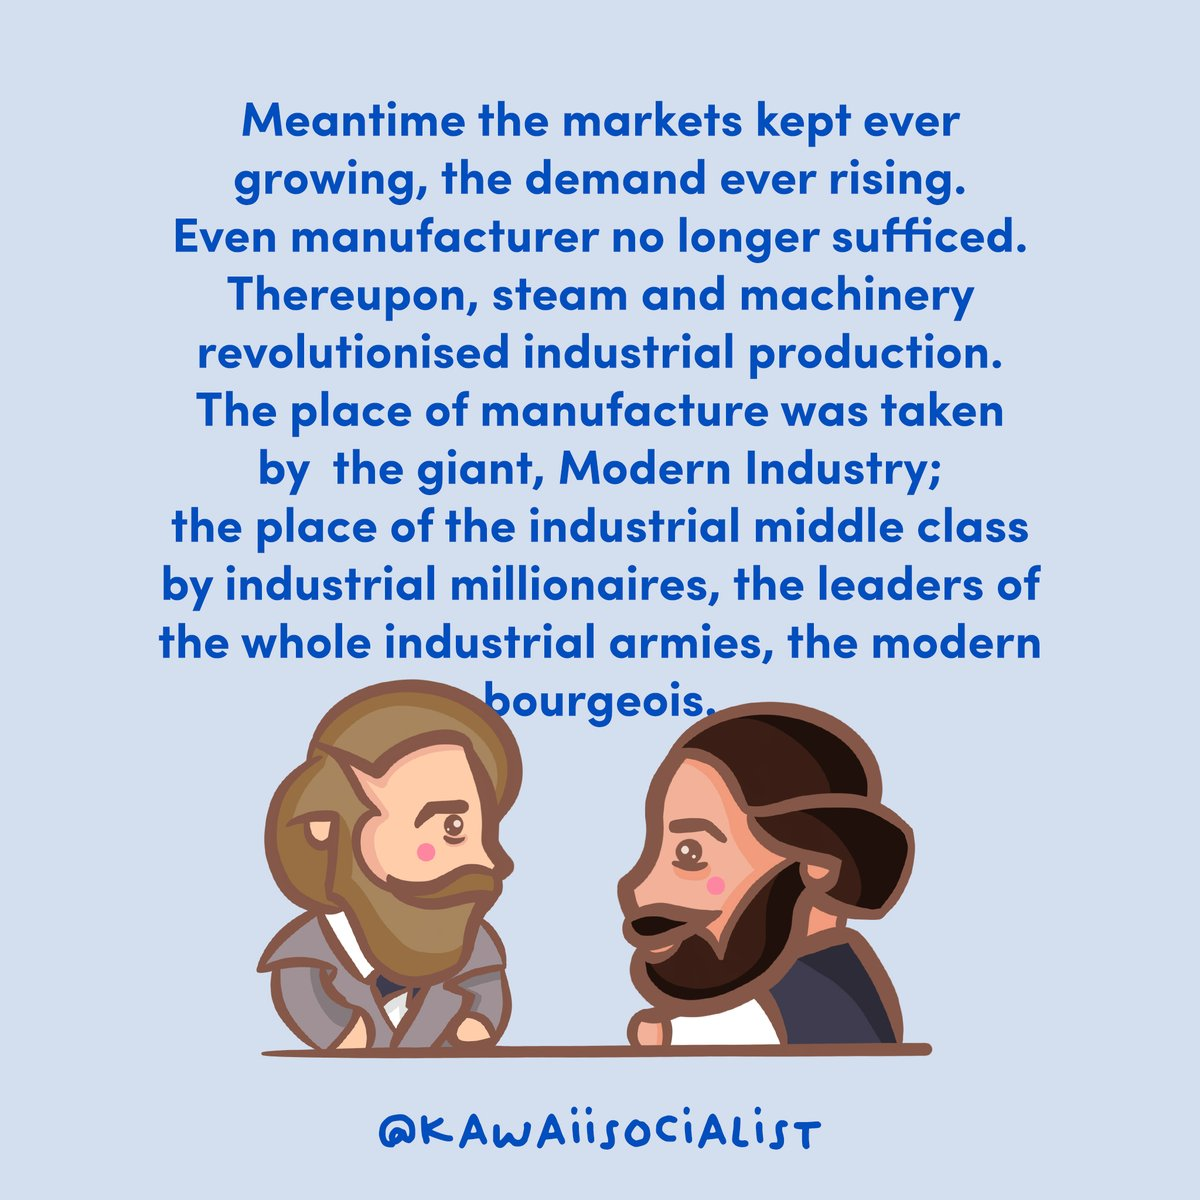 Growing up in the West, we were made to feel that communist beliefs were unsavoury, with many saying that they were 'extreme', 'radical' and 'far-left'. #socialism #socialist #communism #communist #marxism #karlmarx #friedrichengels #engels #theory #philosophy #politics